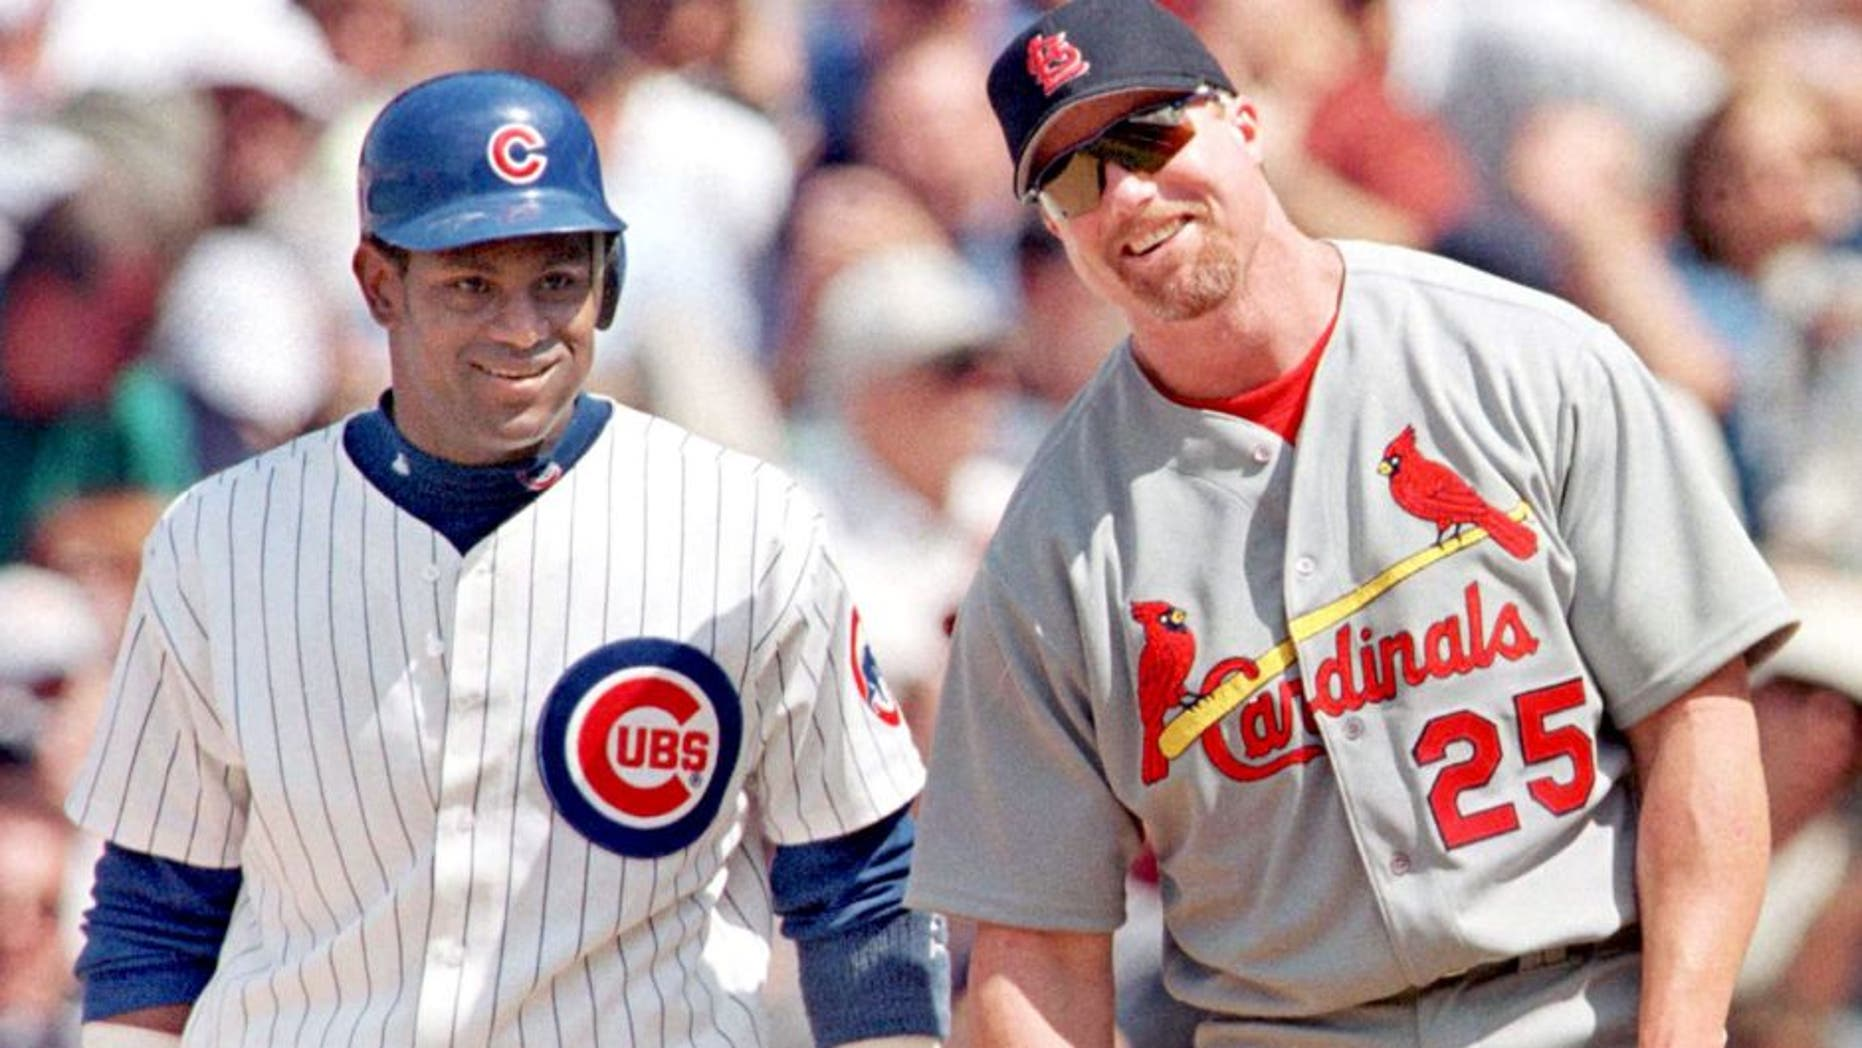 CHICAGO, UNITED STATES: The Chicago Cubs' Sammy Sosa stands with St. Louis Cardinal's first baseman Mark McGwire between pitches after Sosa singled in the second inning 28 May, 1999, at Wrigley Field in Chicago, Illinois. It was the first time the pair had played each other since last year's home run race. The Cubs won 6-3 with help from a home run from Sosa. AFP PHOTO/John ZICH (Photo credit should read JOHN ZICH/AFP/Getty Images)